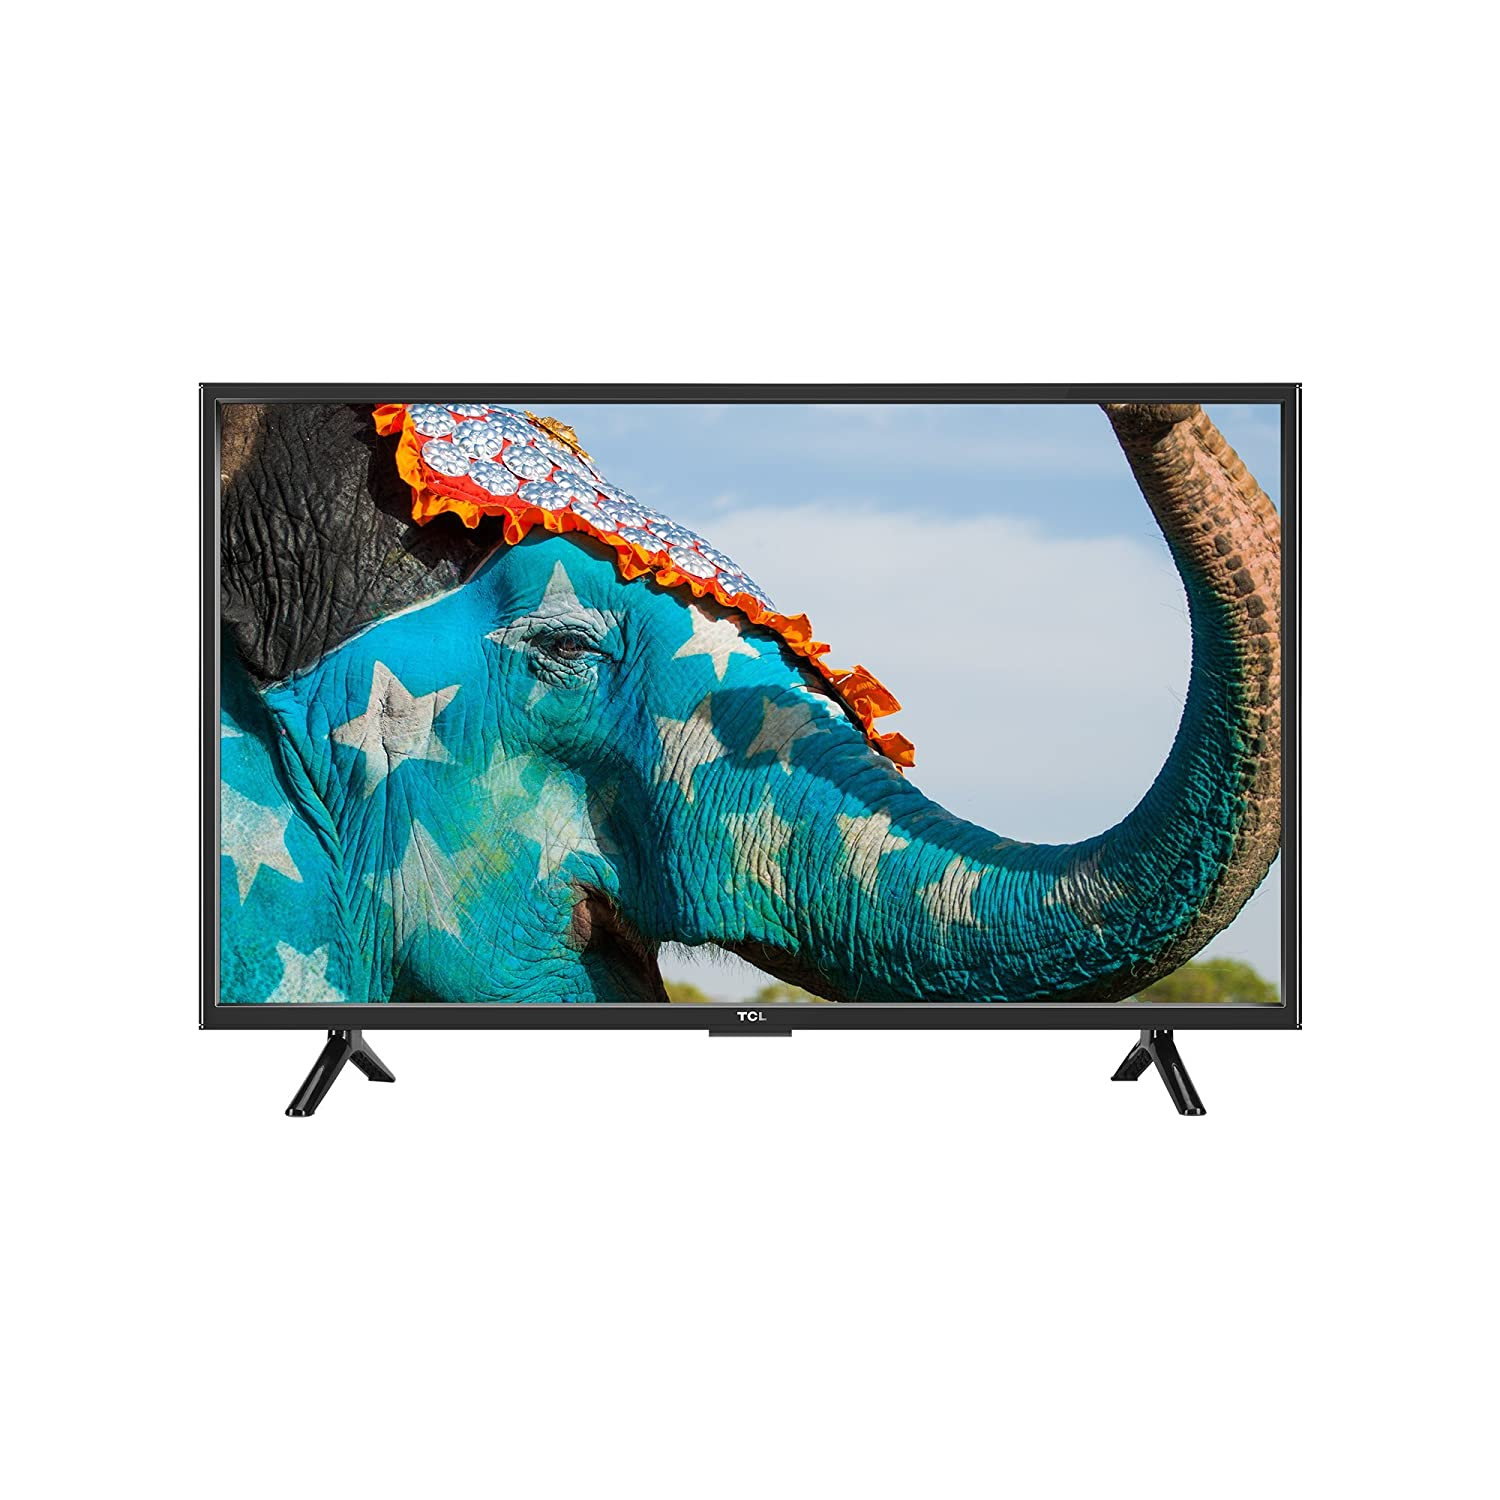 Deals on TCL 81.28 cm (32 inches) LED tv